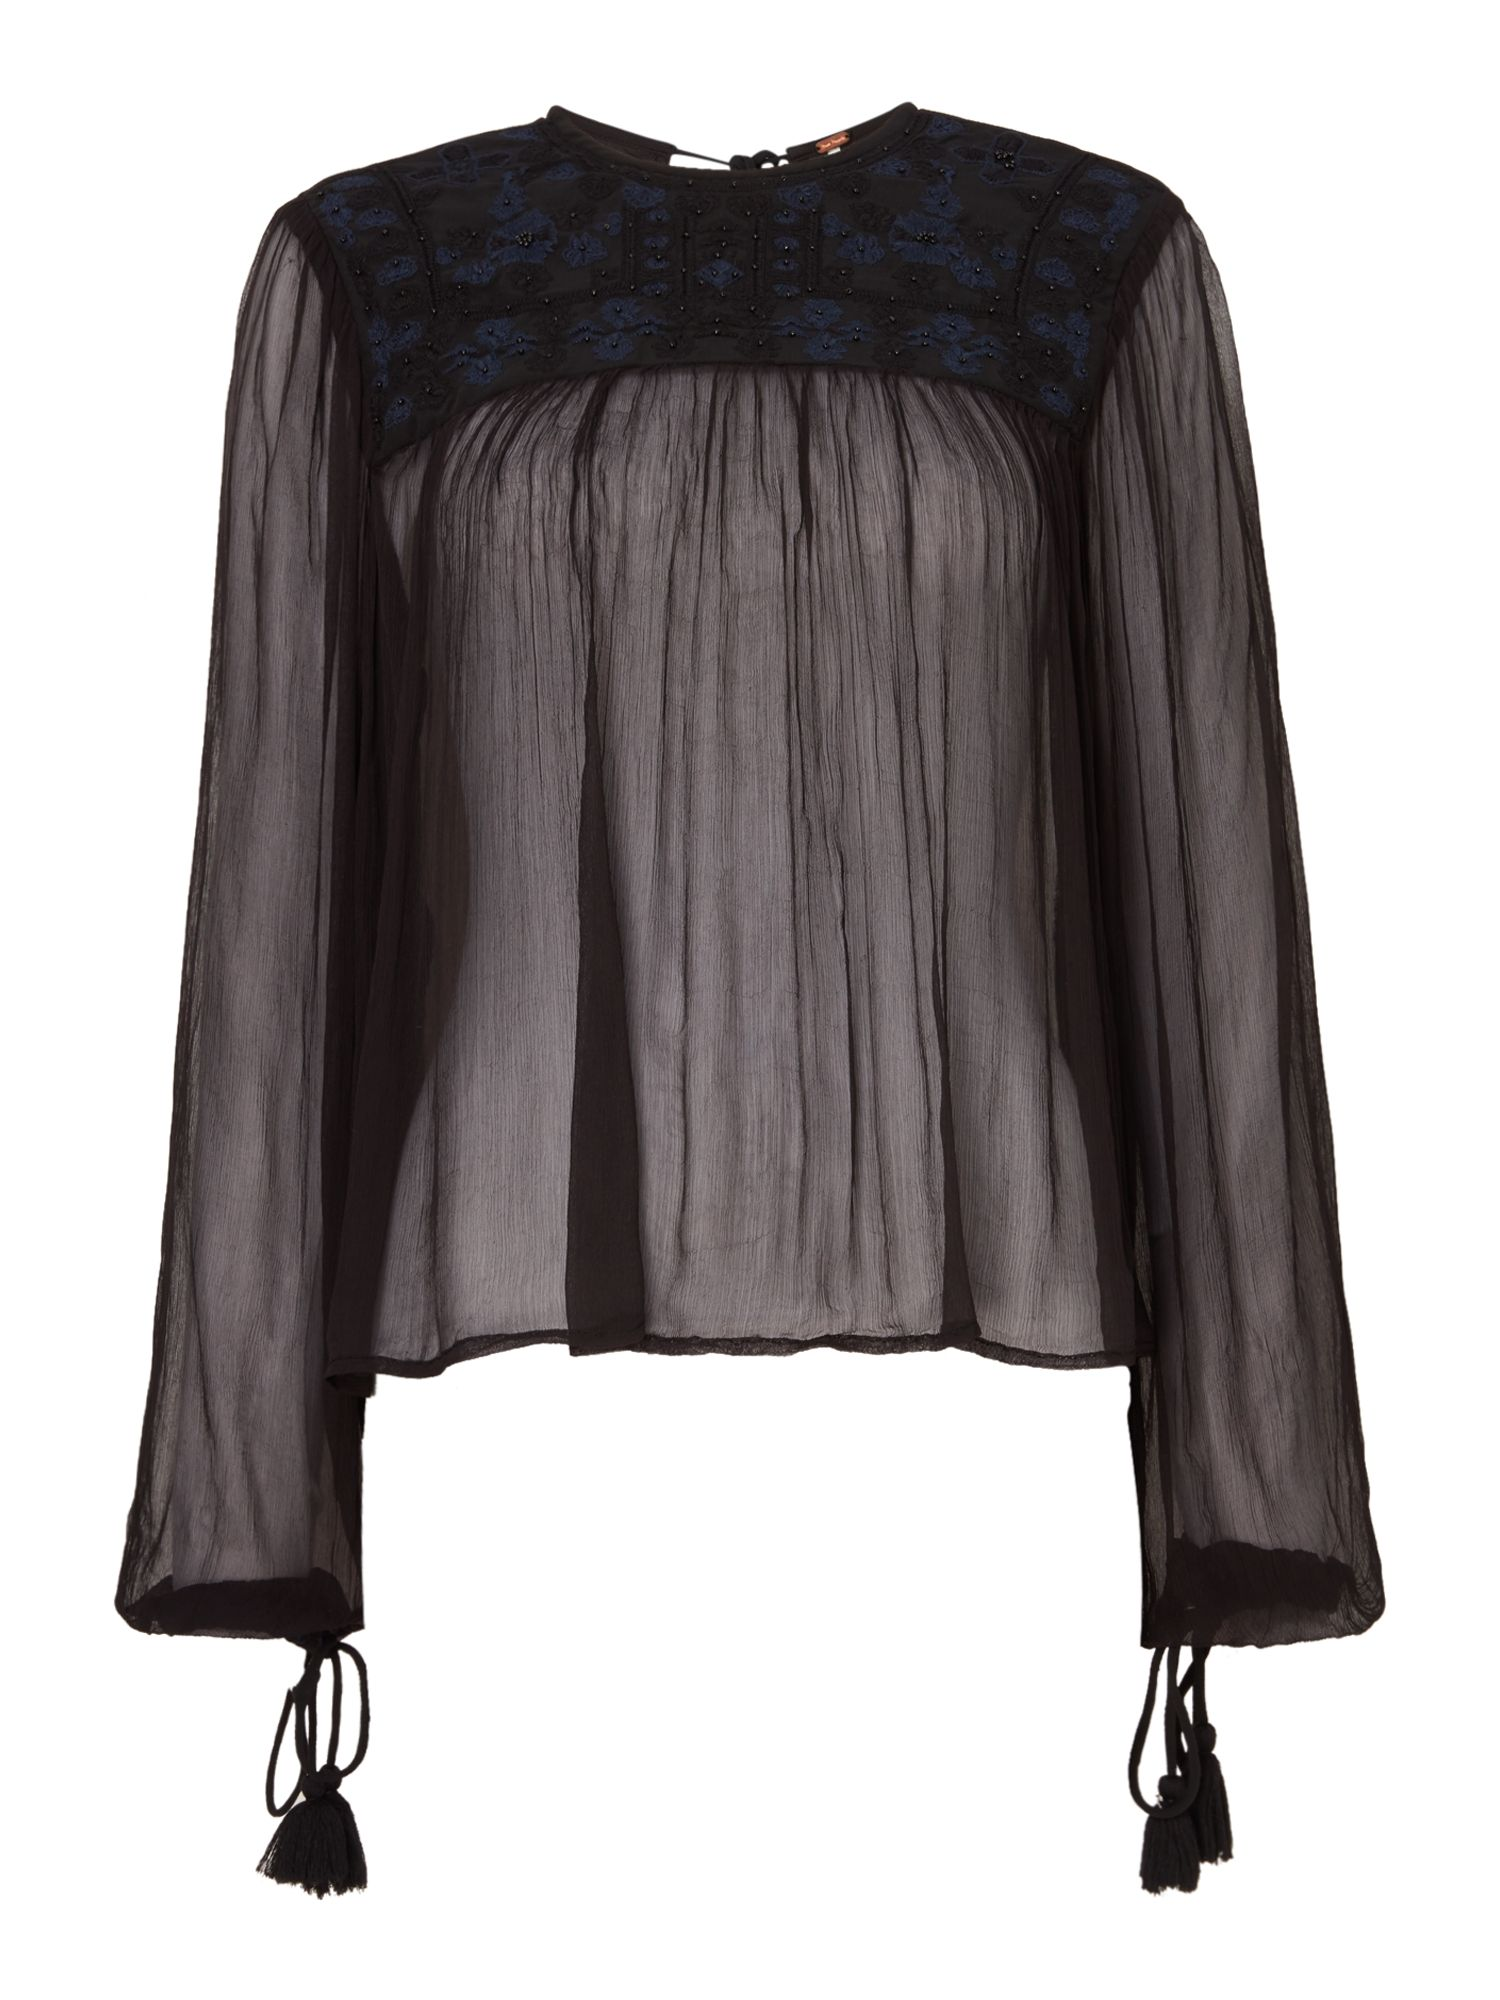 Free People Long Sleeve Sheer Retro Femme Top, Black